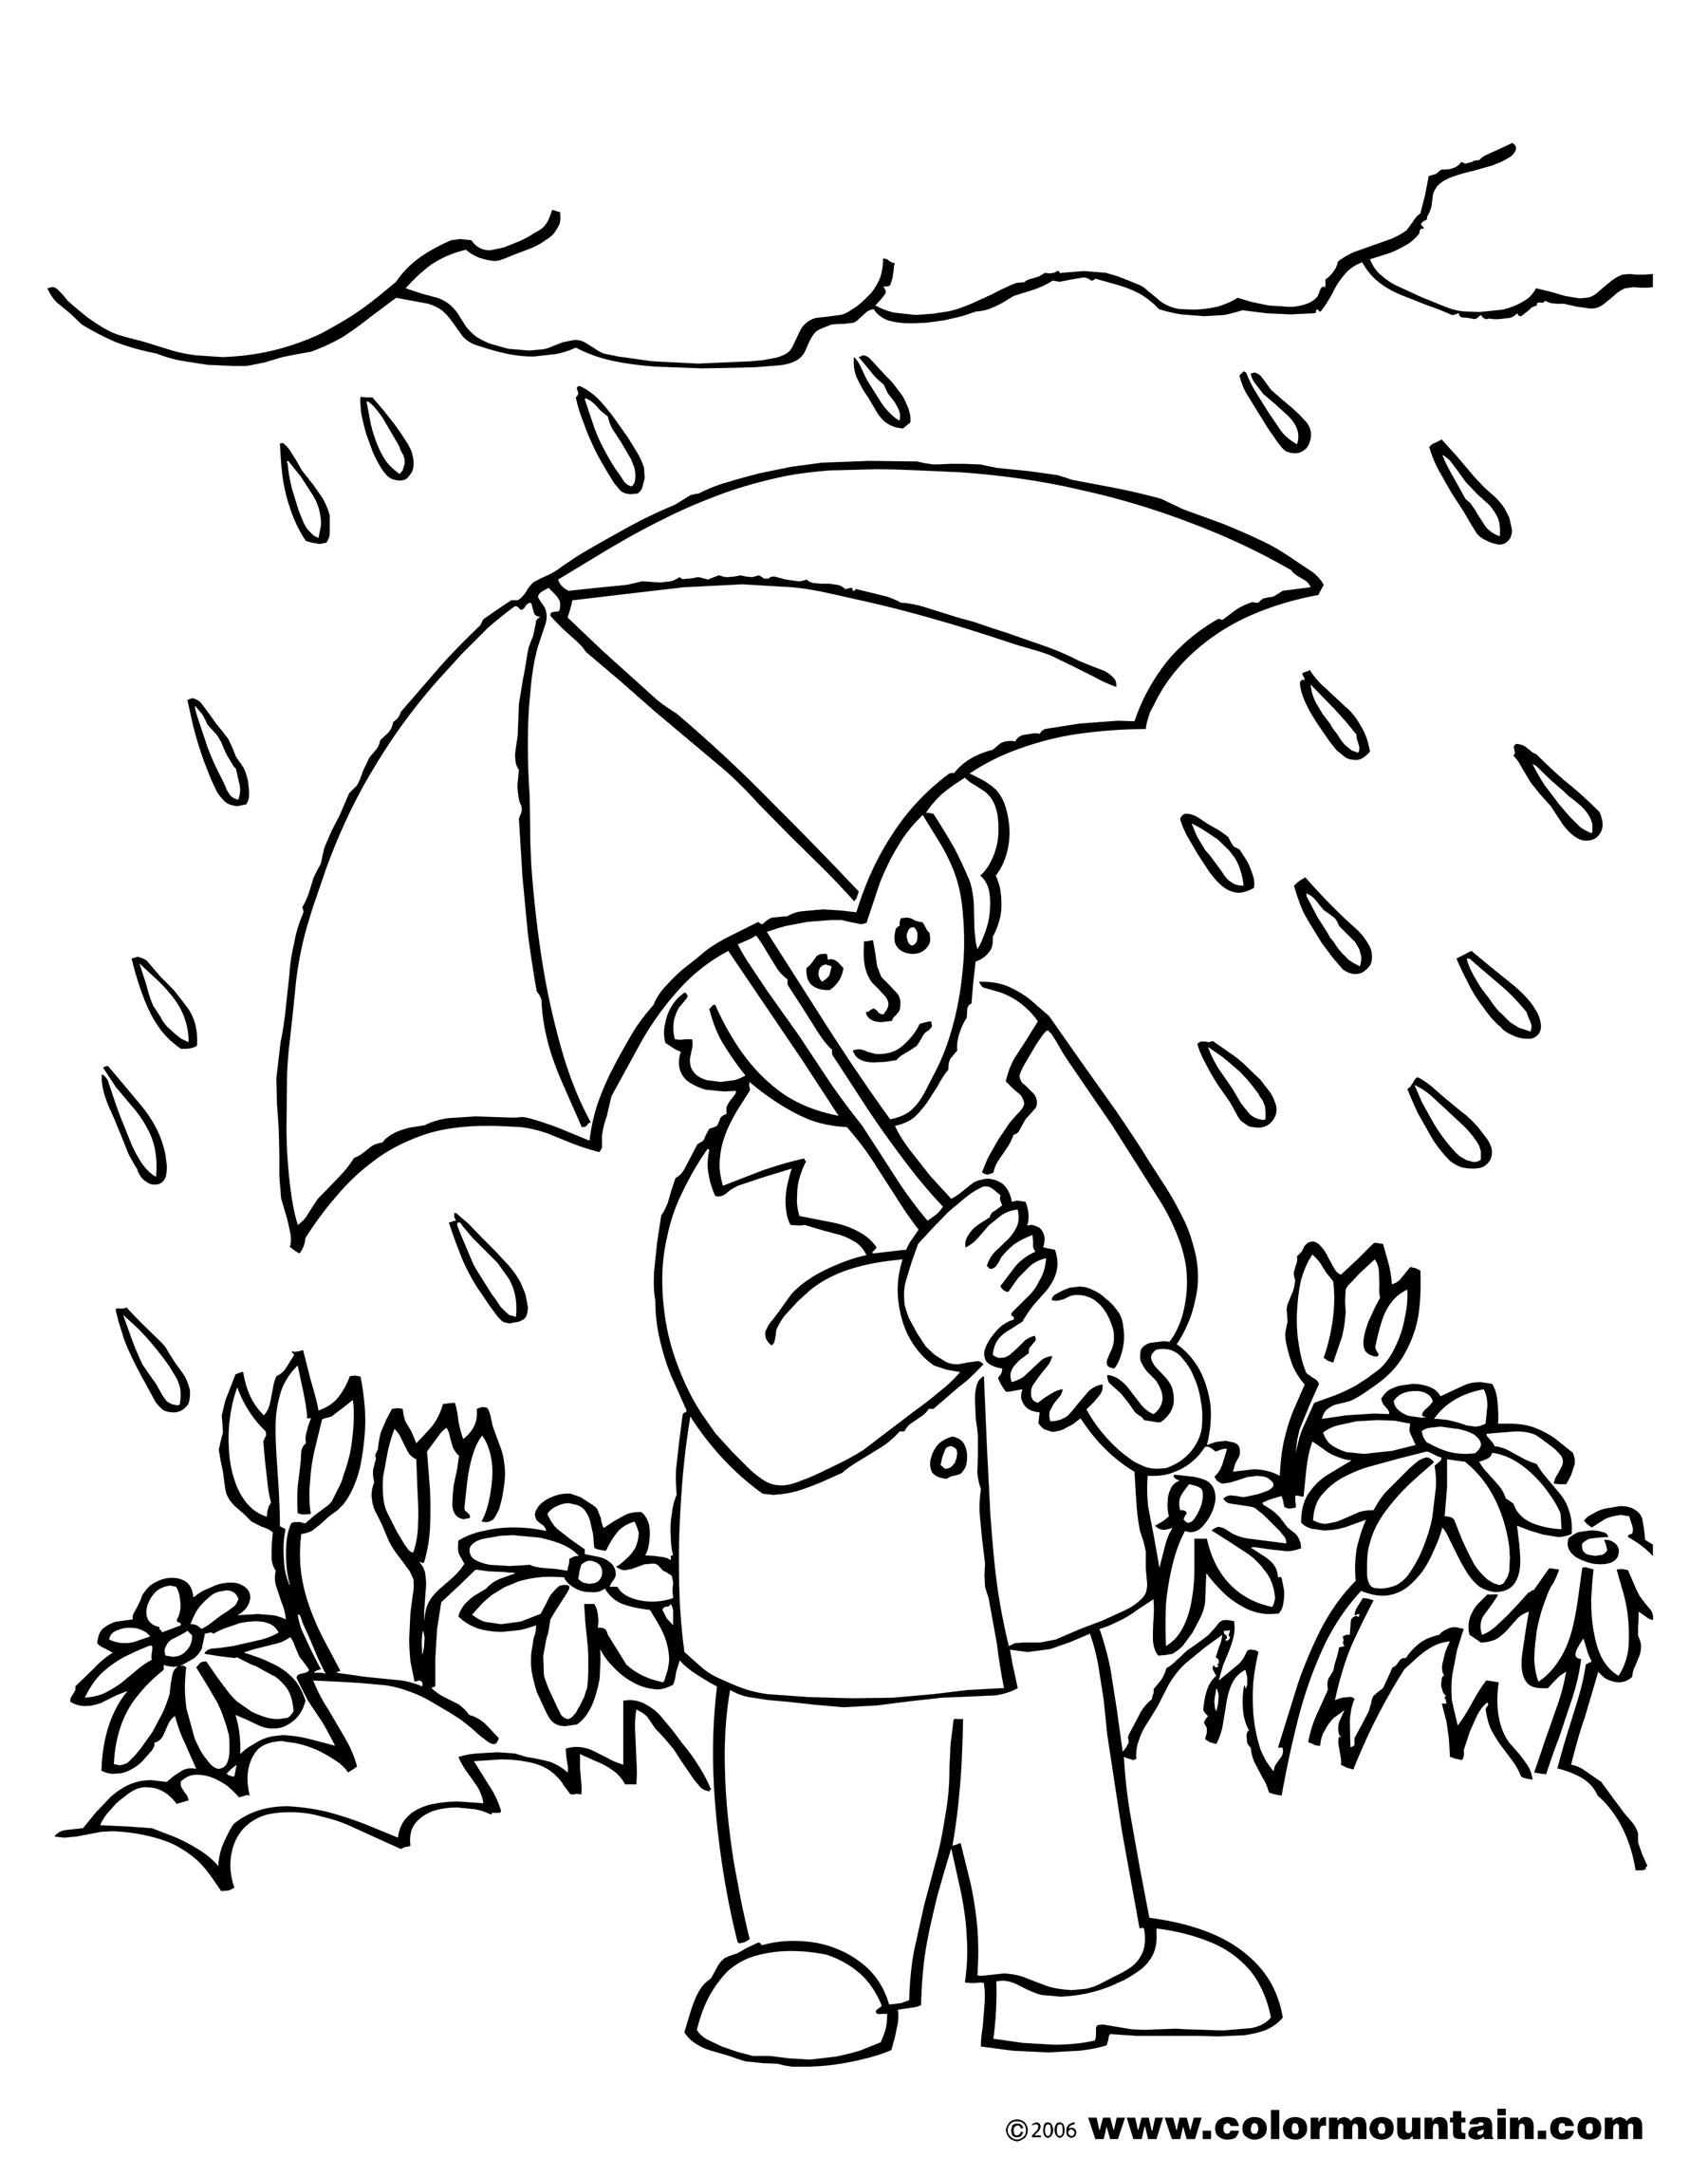 April coloring pages to and print for free